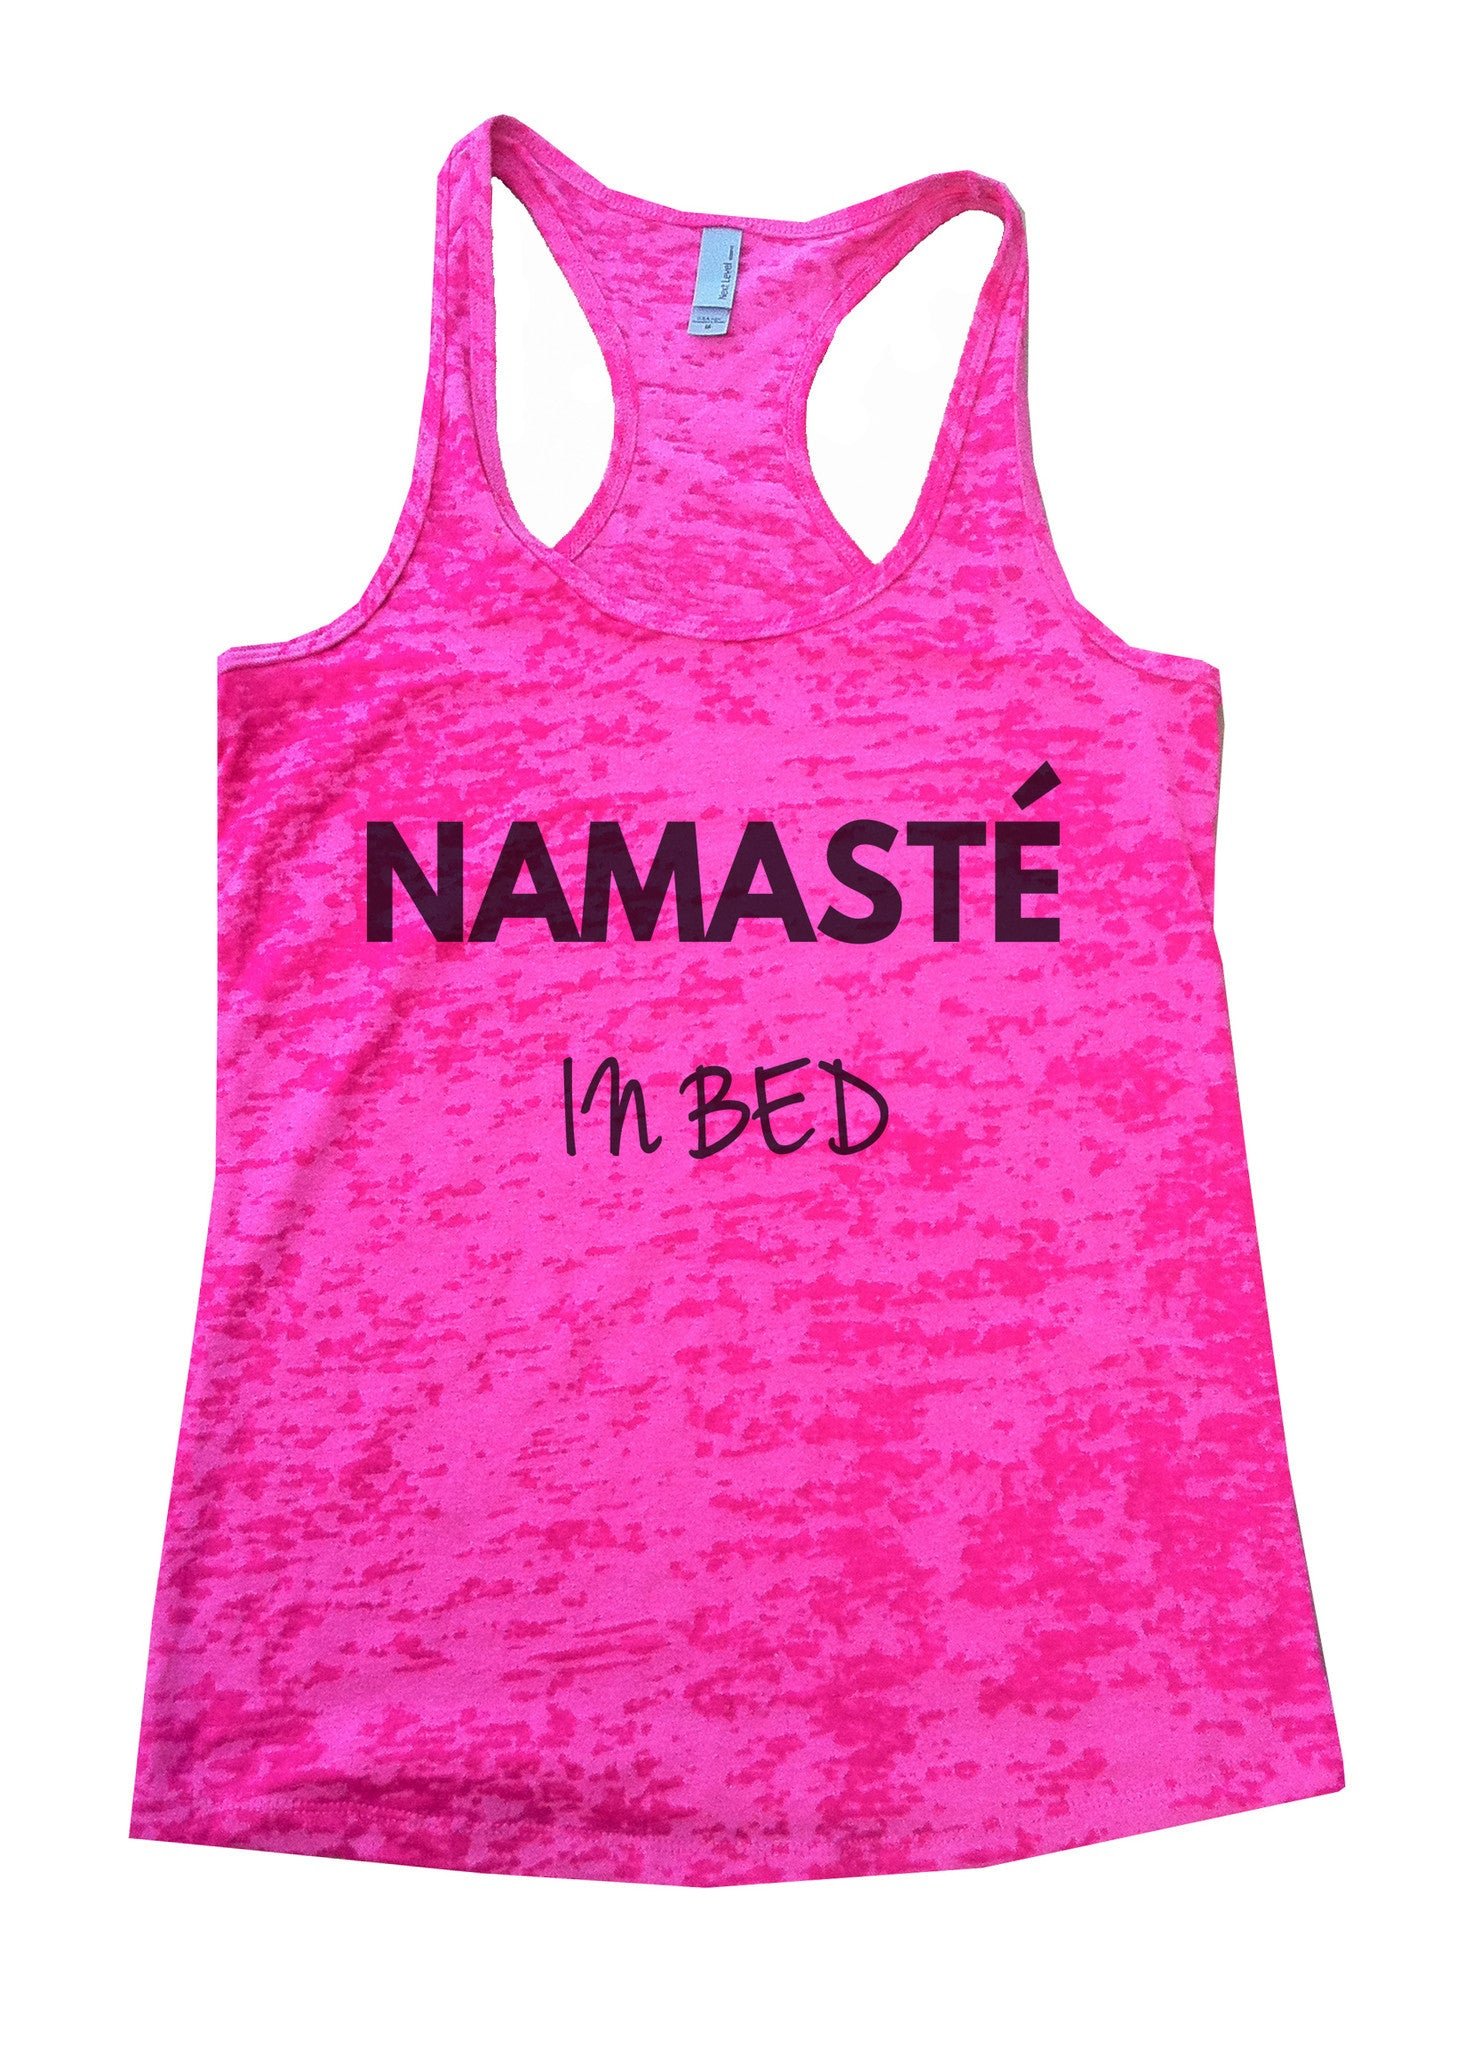 Namaste In Bed Burnout Tank Top By BurnoutTankTops.com - 647 - Funny Shirts Tank Tops Burnouts and Triblends  - 4